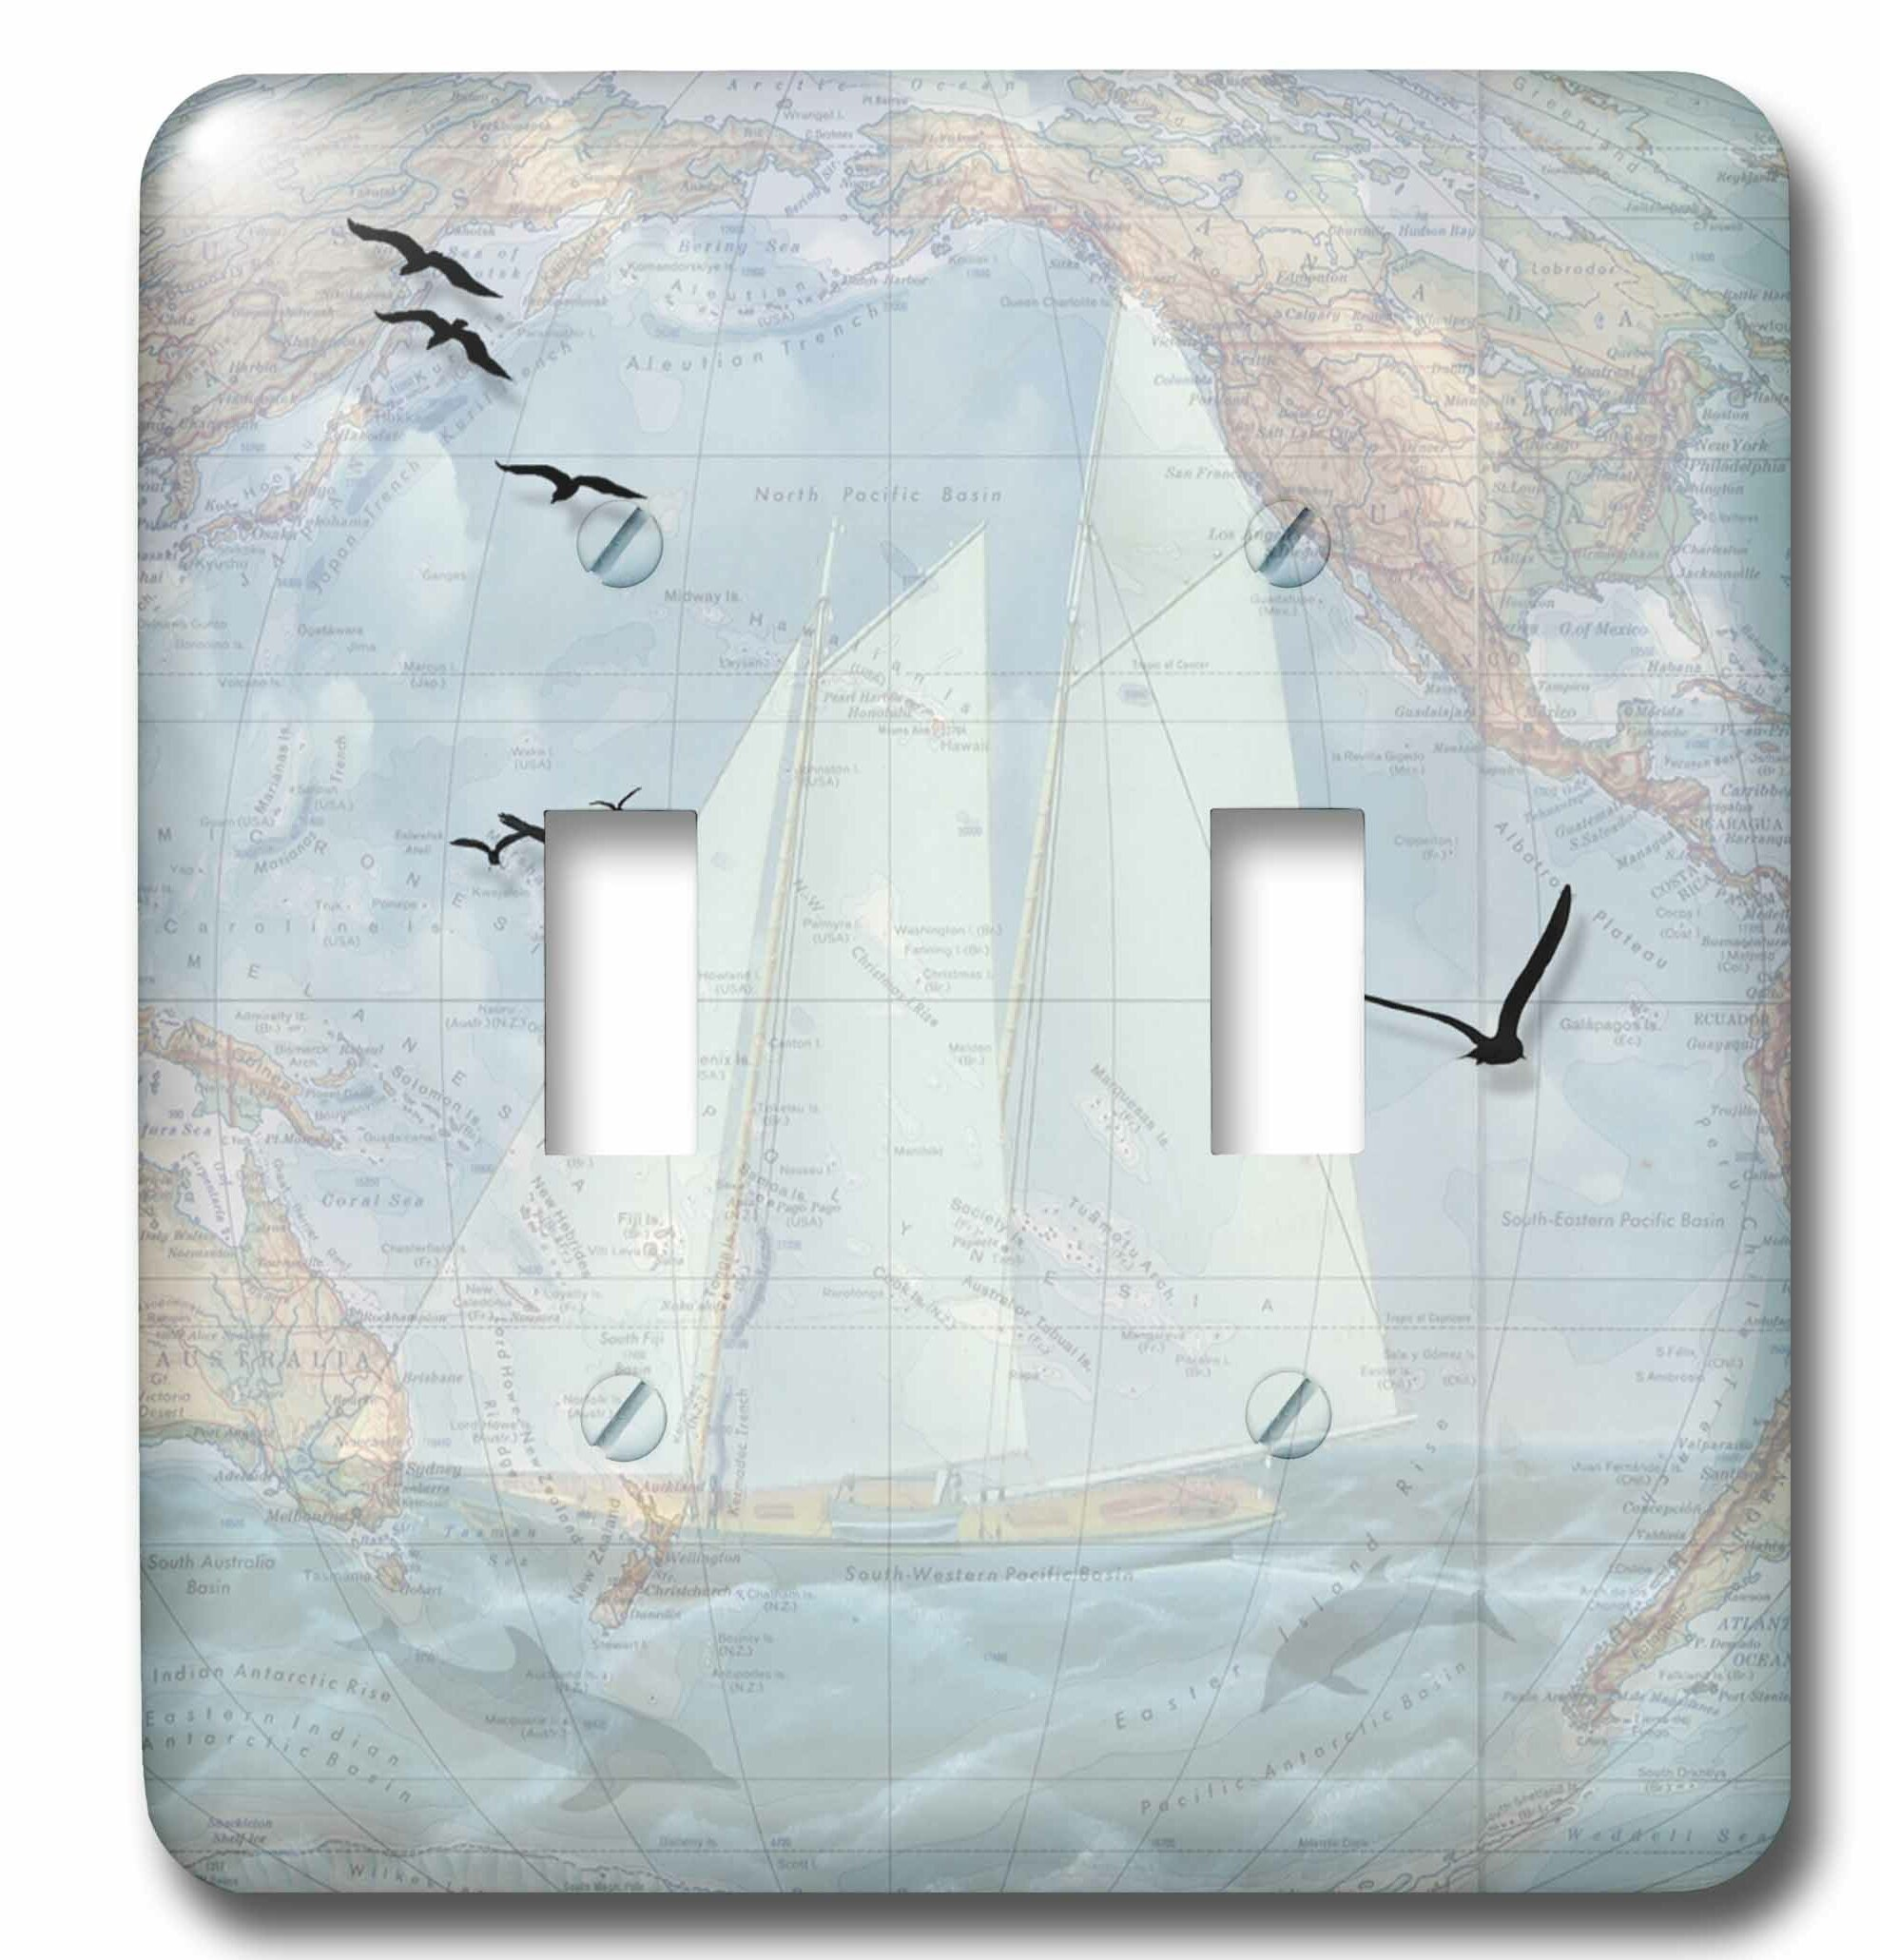 3drose Map And Sailing Ship With The Ocean Seabirds And Dolphins Very Masculine 2 Gang Toggle Light Switch Wall Plate